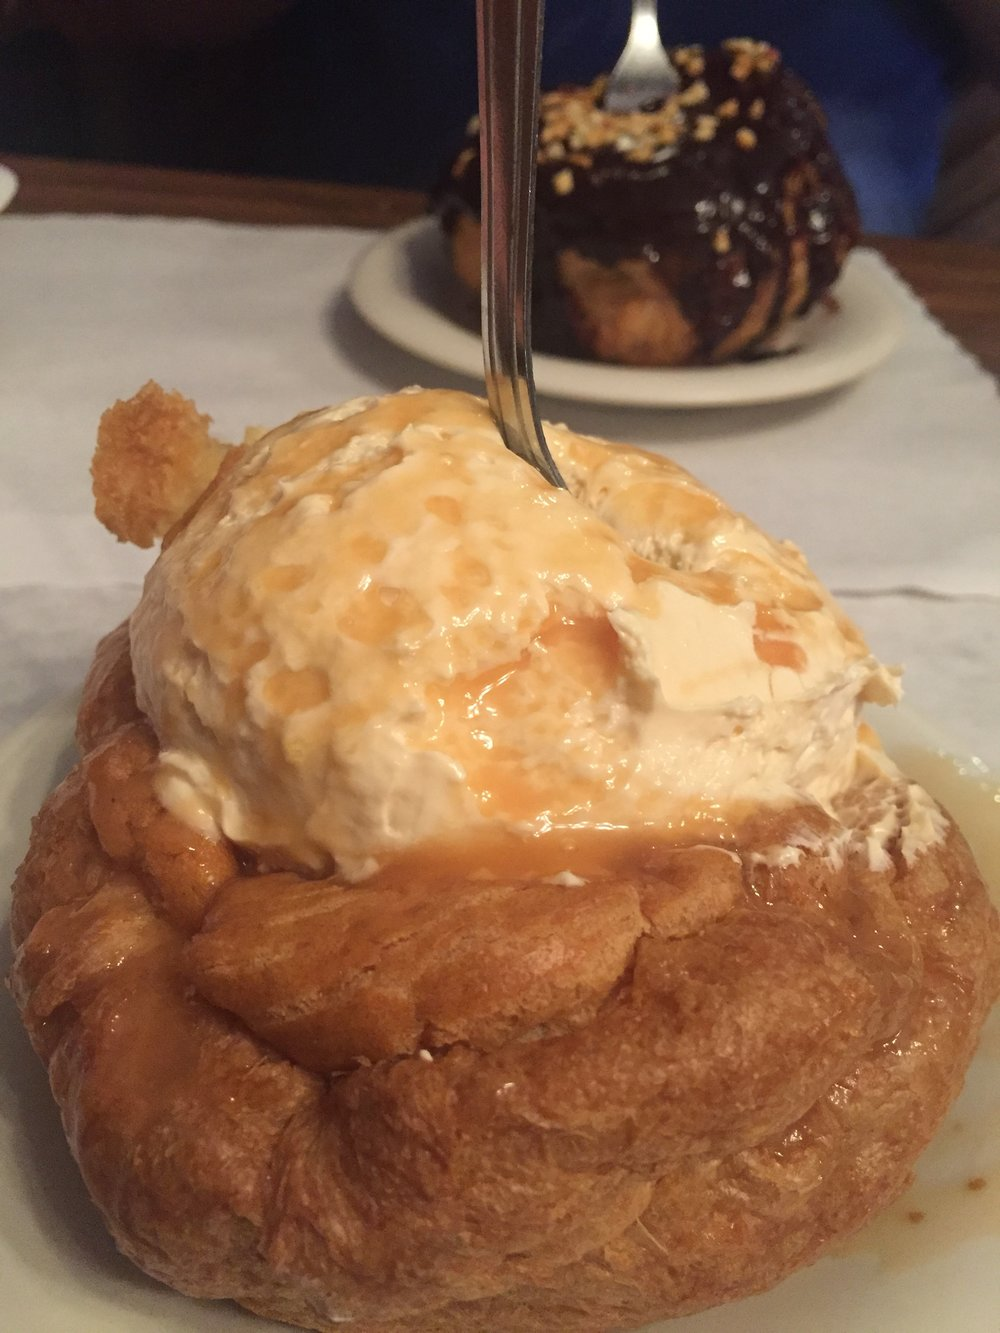 Cream Puff flavor of the month - Salted Carmel!